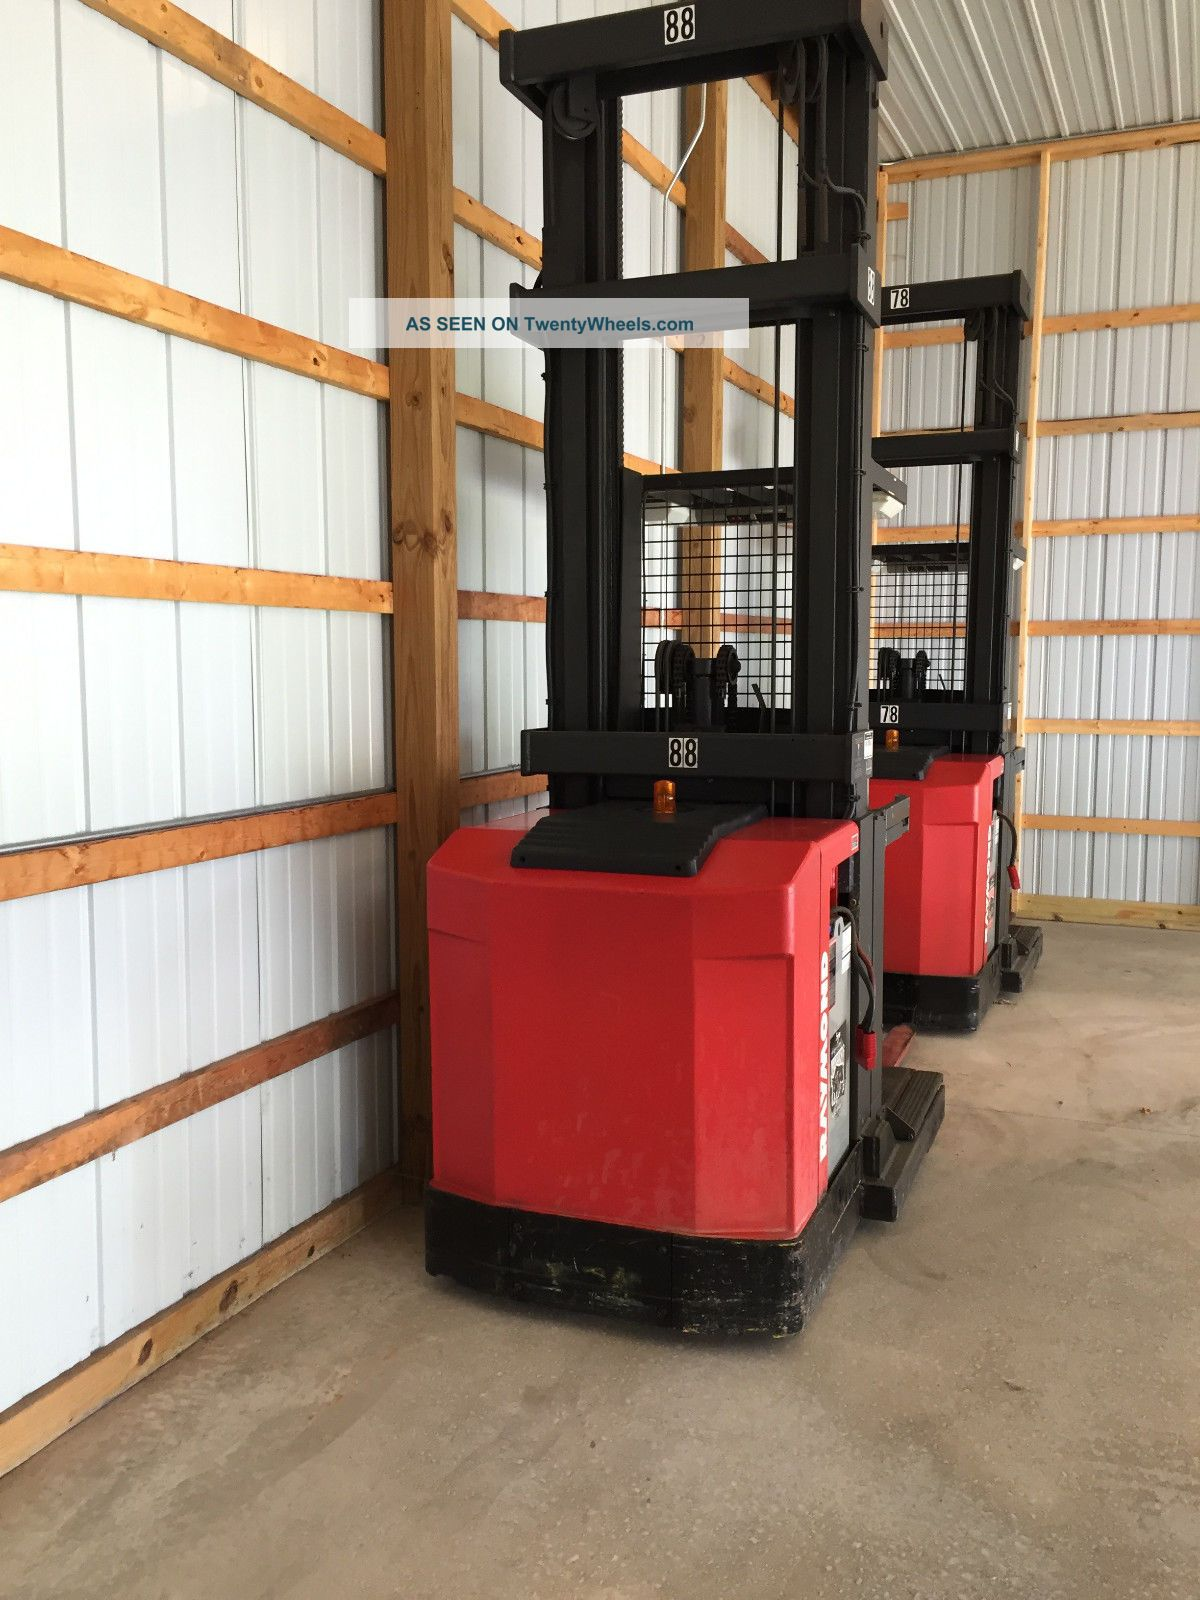 Raymond High Bay Order Pickers Model: Easi - Opc30tt Forklifts photo